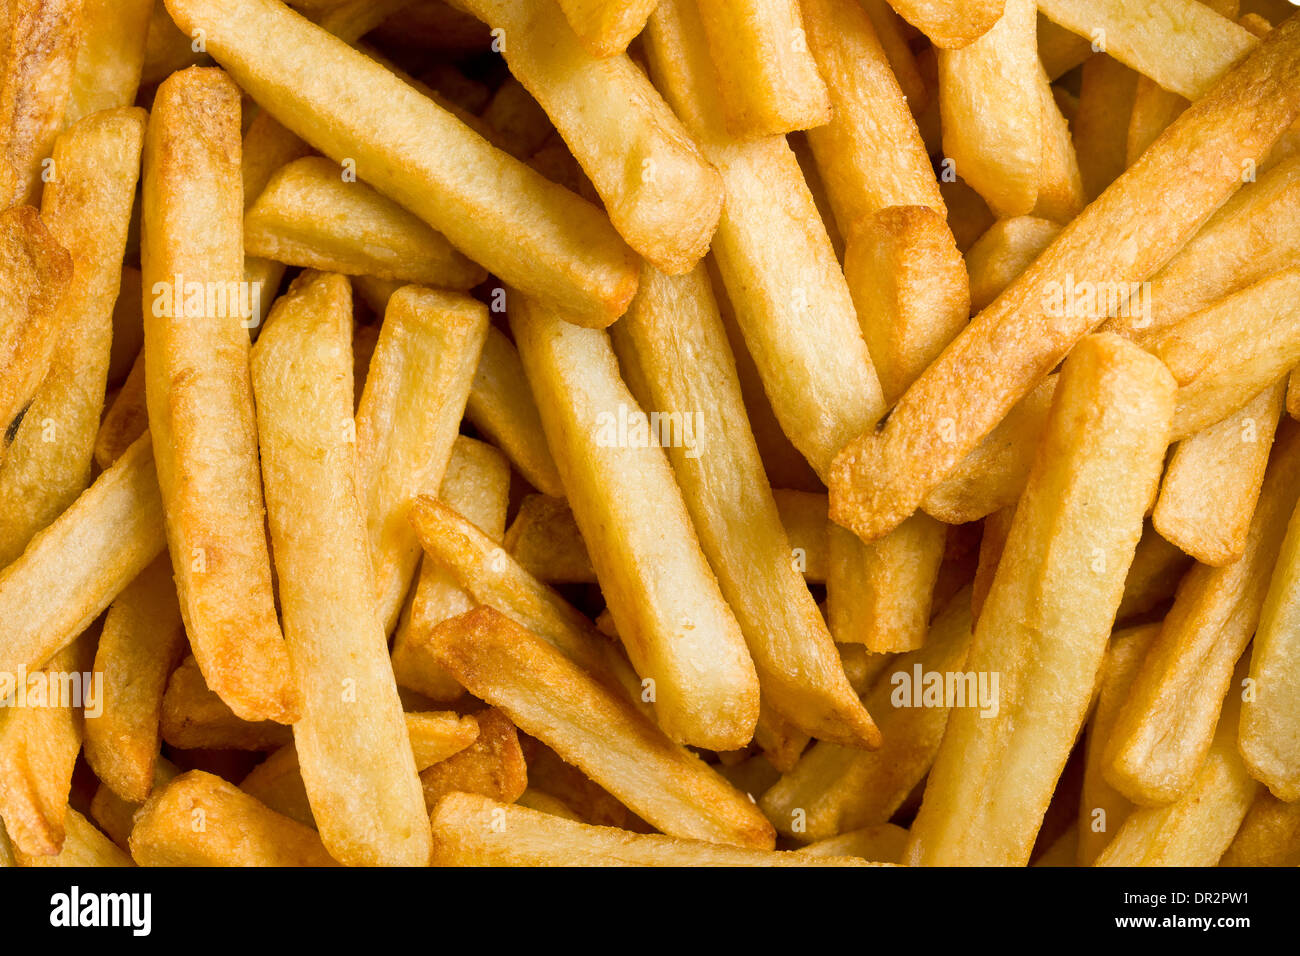 close up of fried french fries - Stock Image